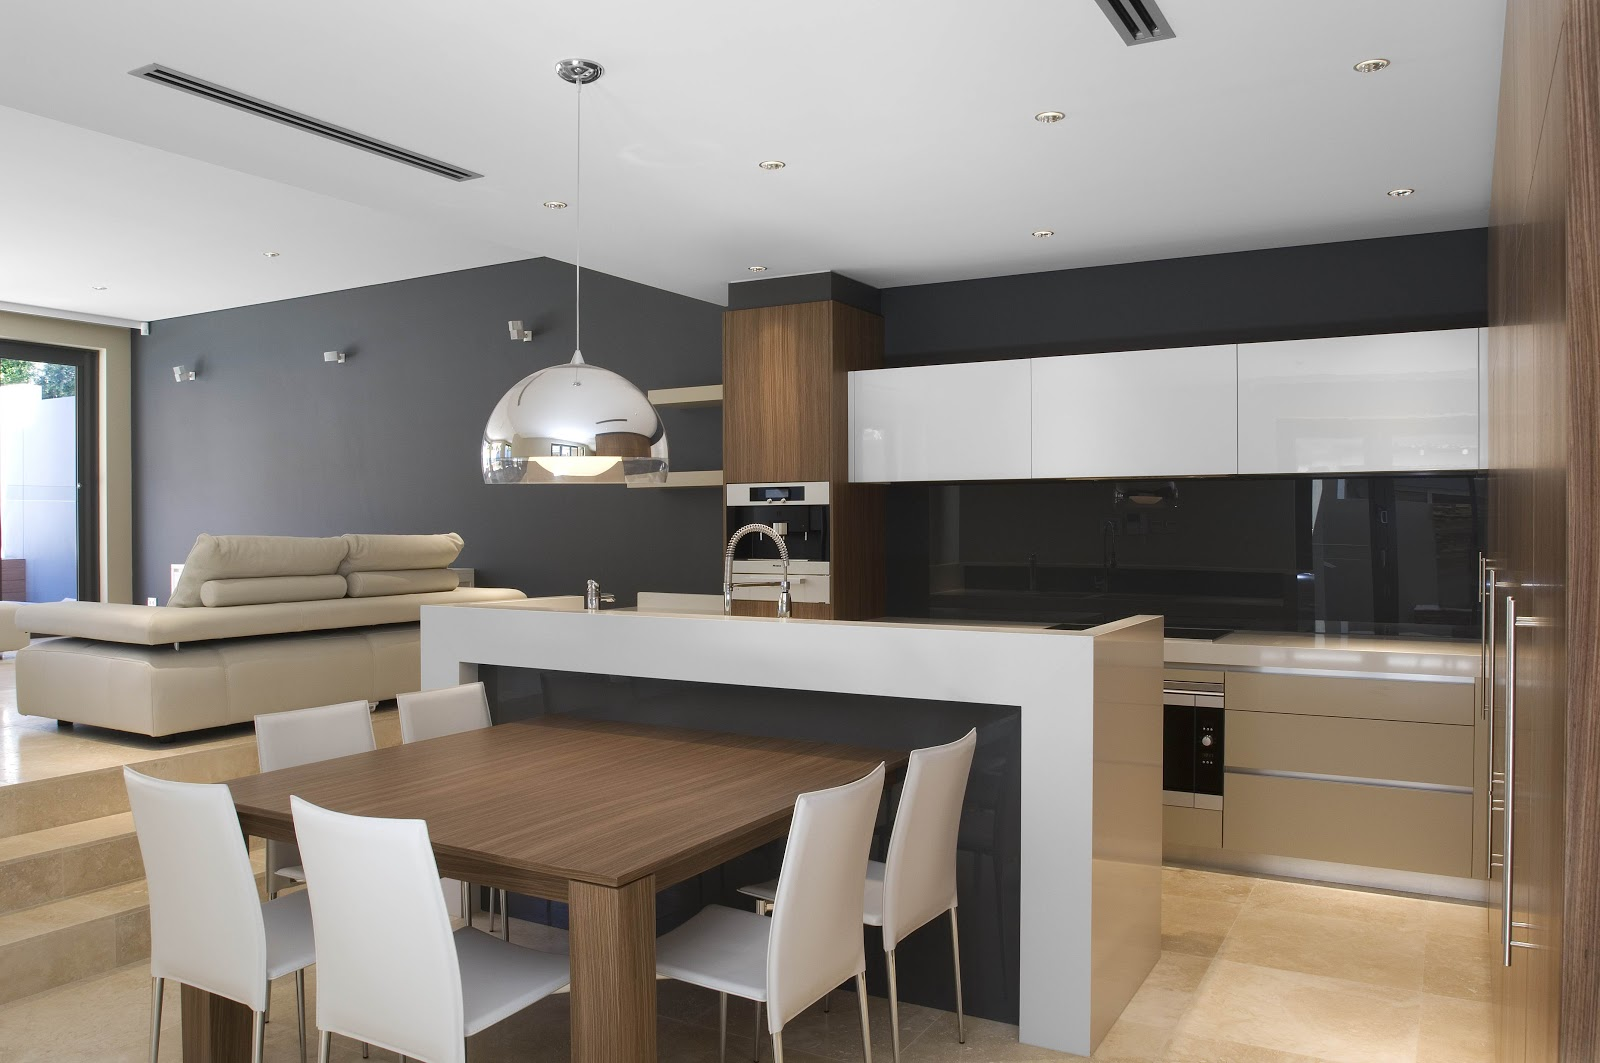 Minosa kitchen design takes centre stage design by minosa Kitchen design centre stanway